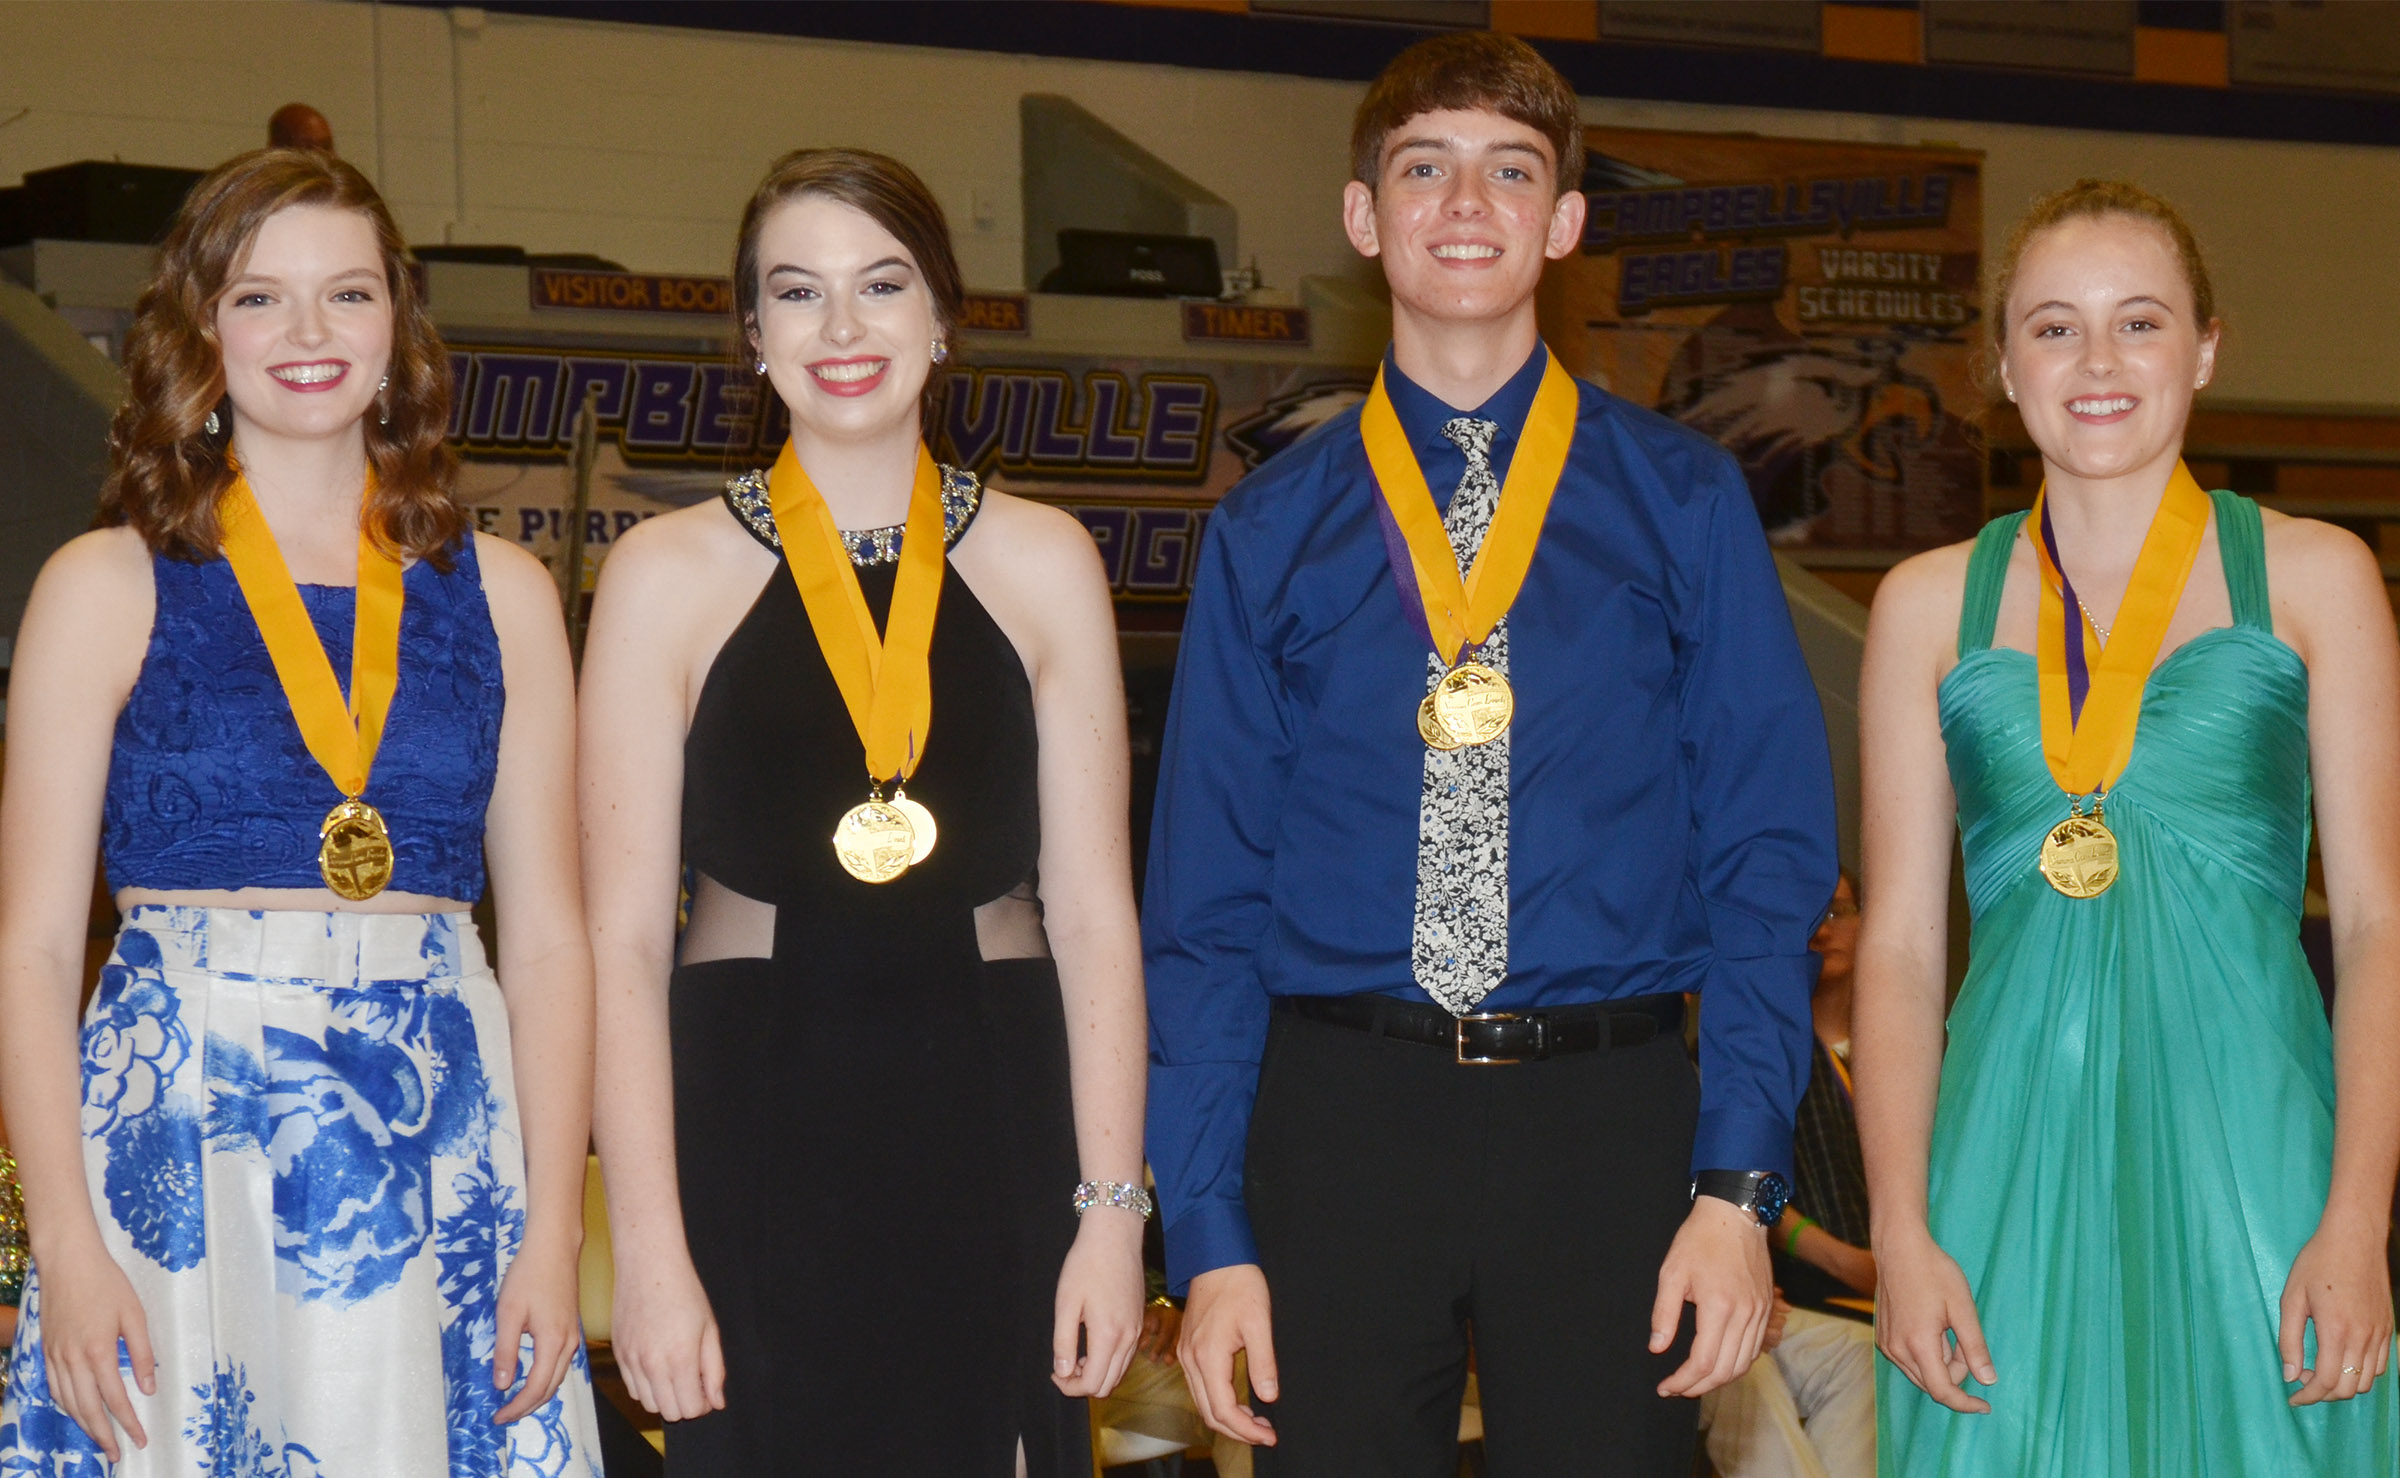 Receiving summa cum laude honors are, from left, Blair Lamb, Laura Lamb, Murphy Lamb and Caroline McMahan.